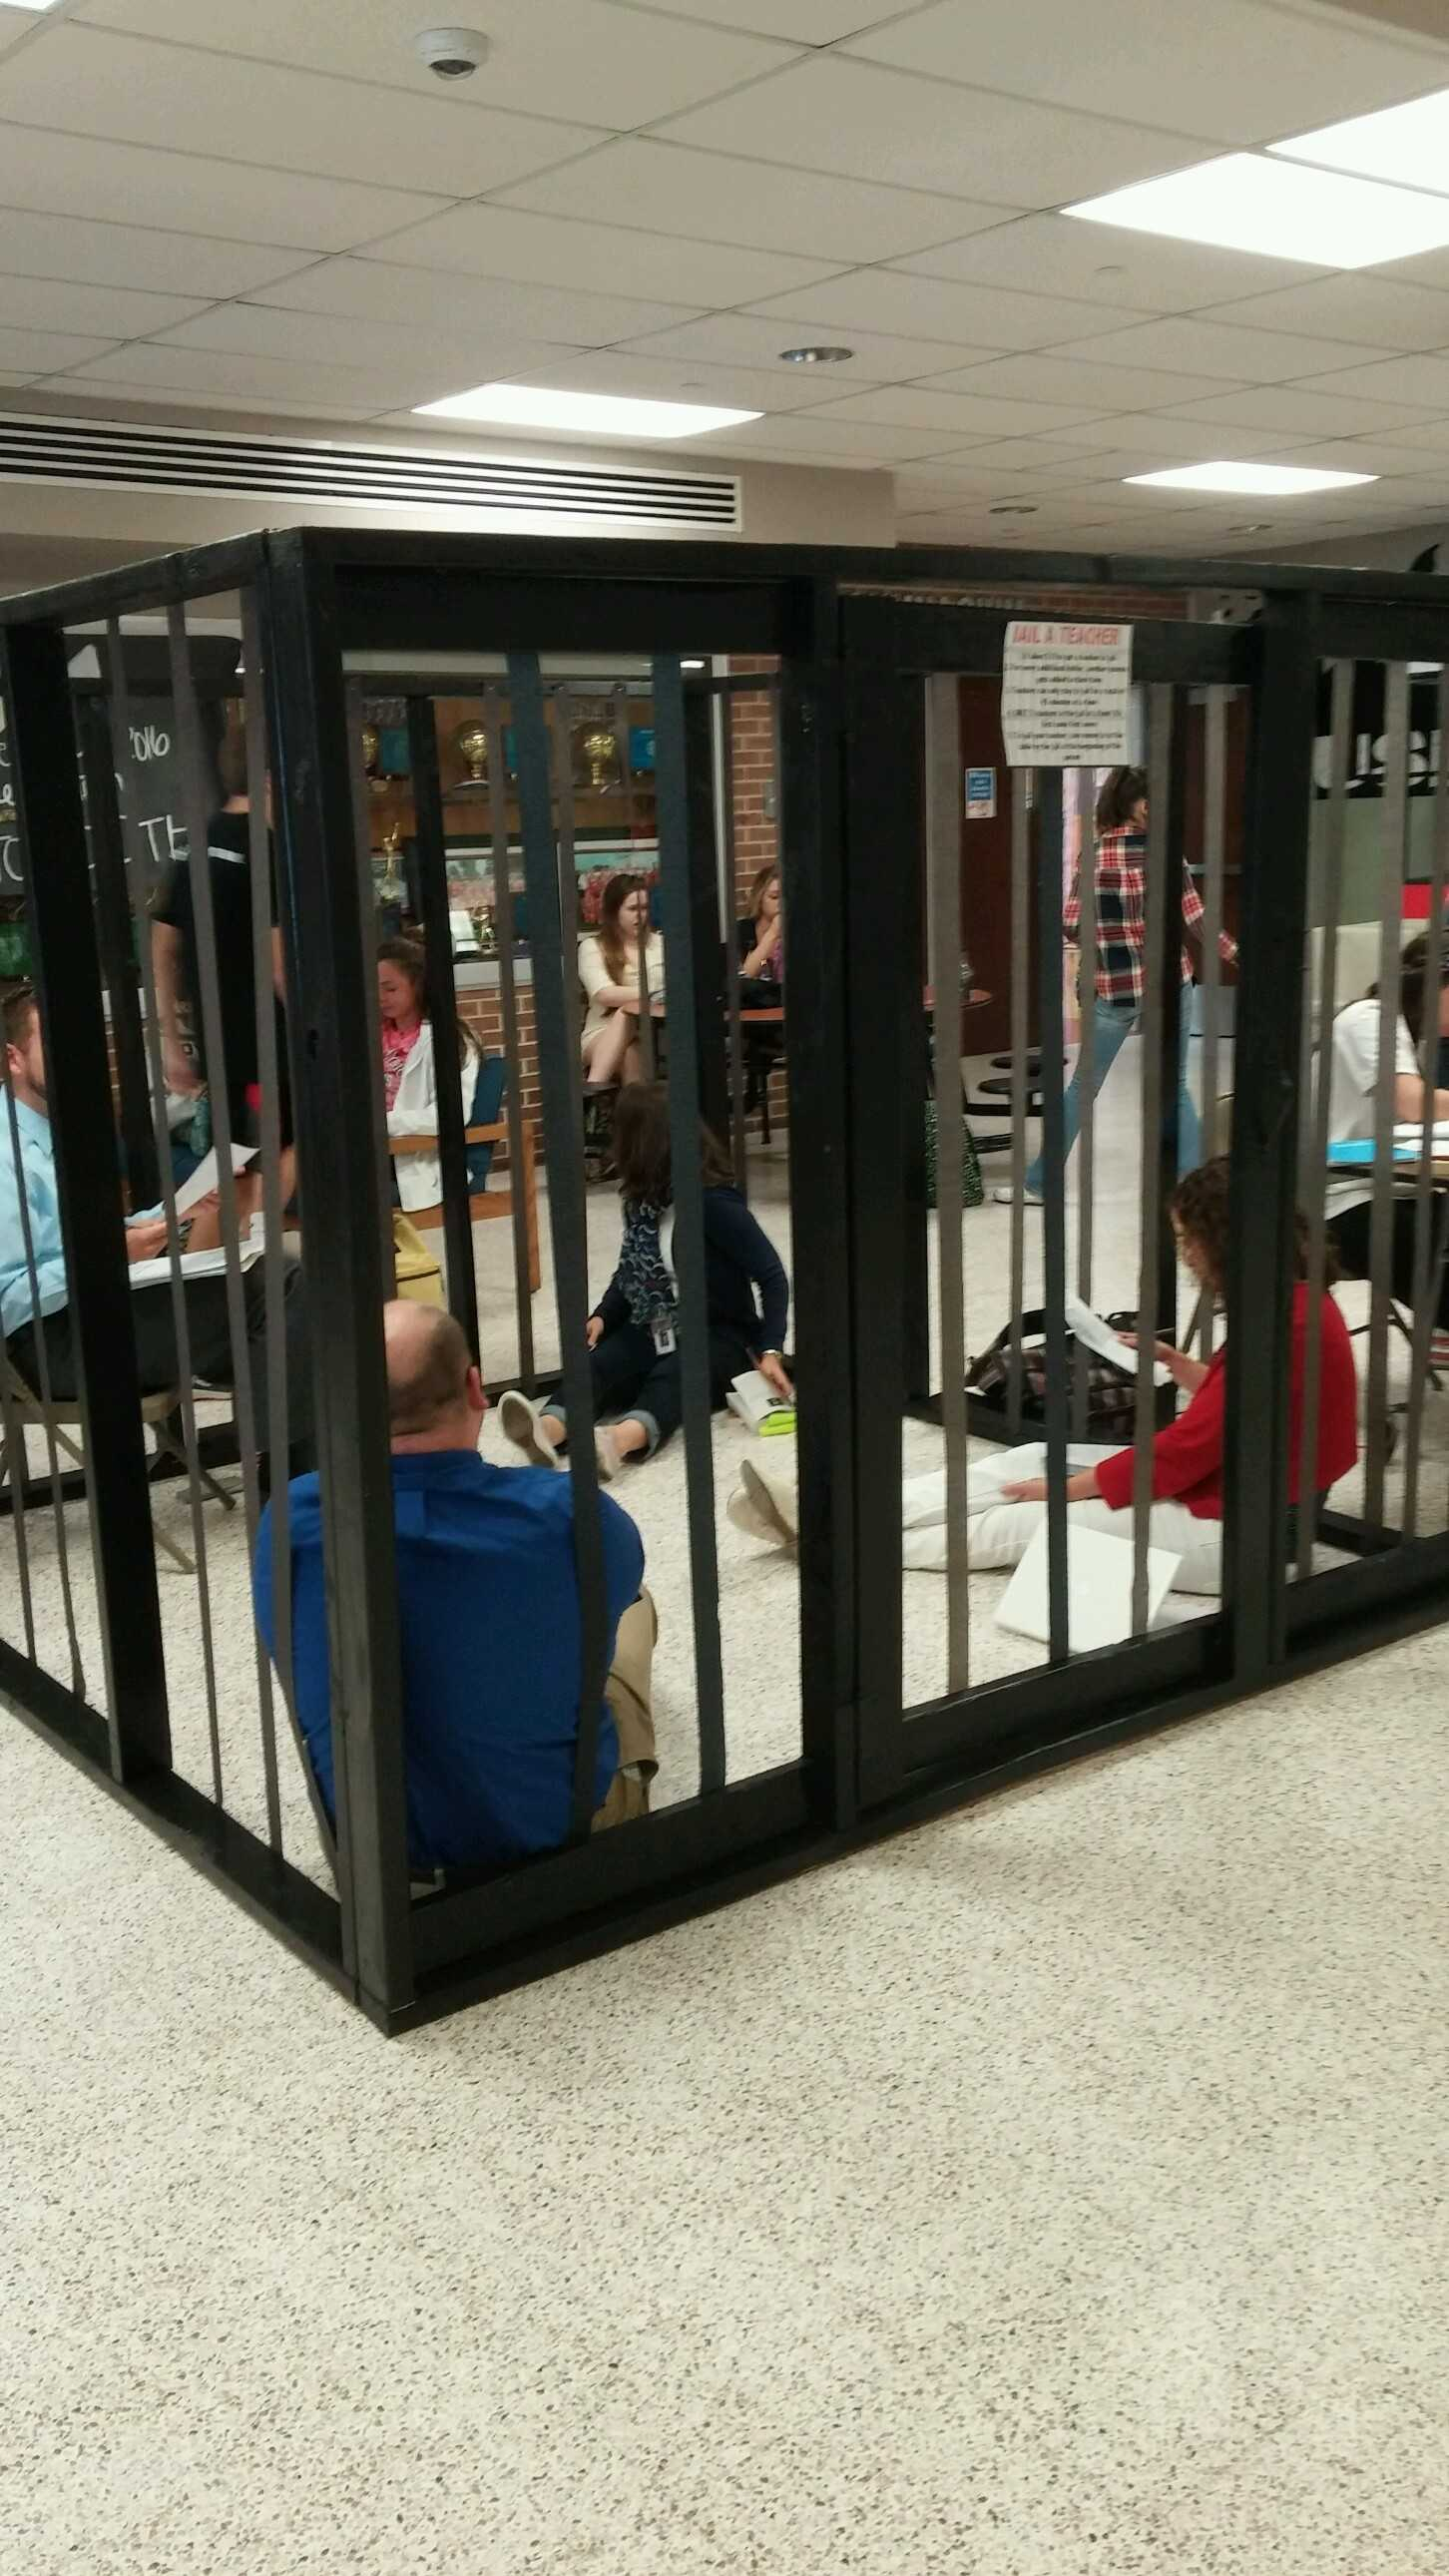 Multiple teachers were jailed at the same time throughout the day.